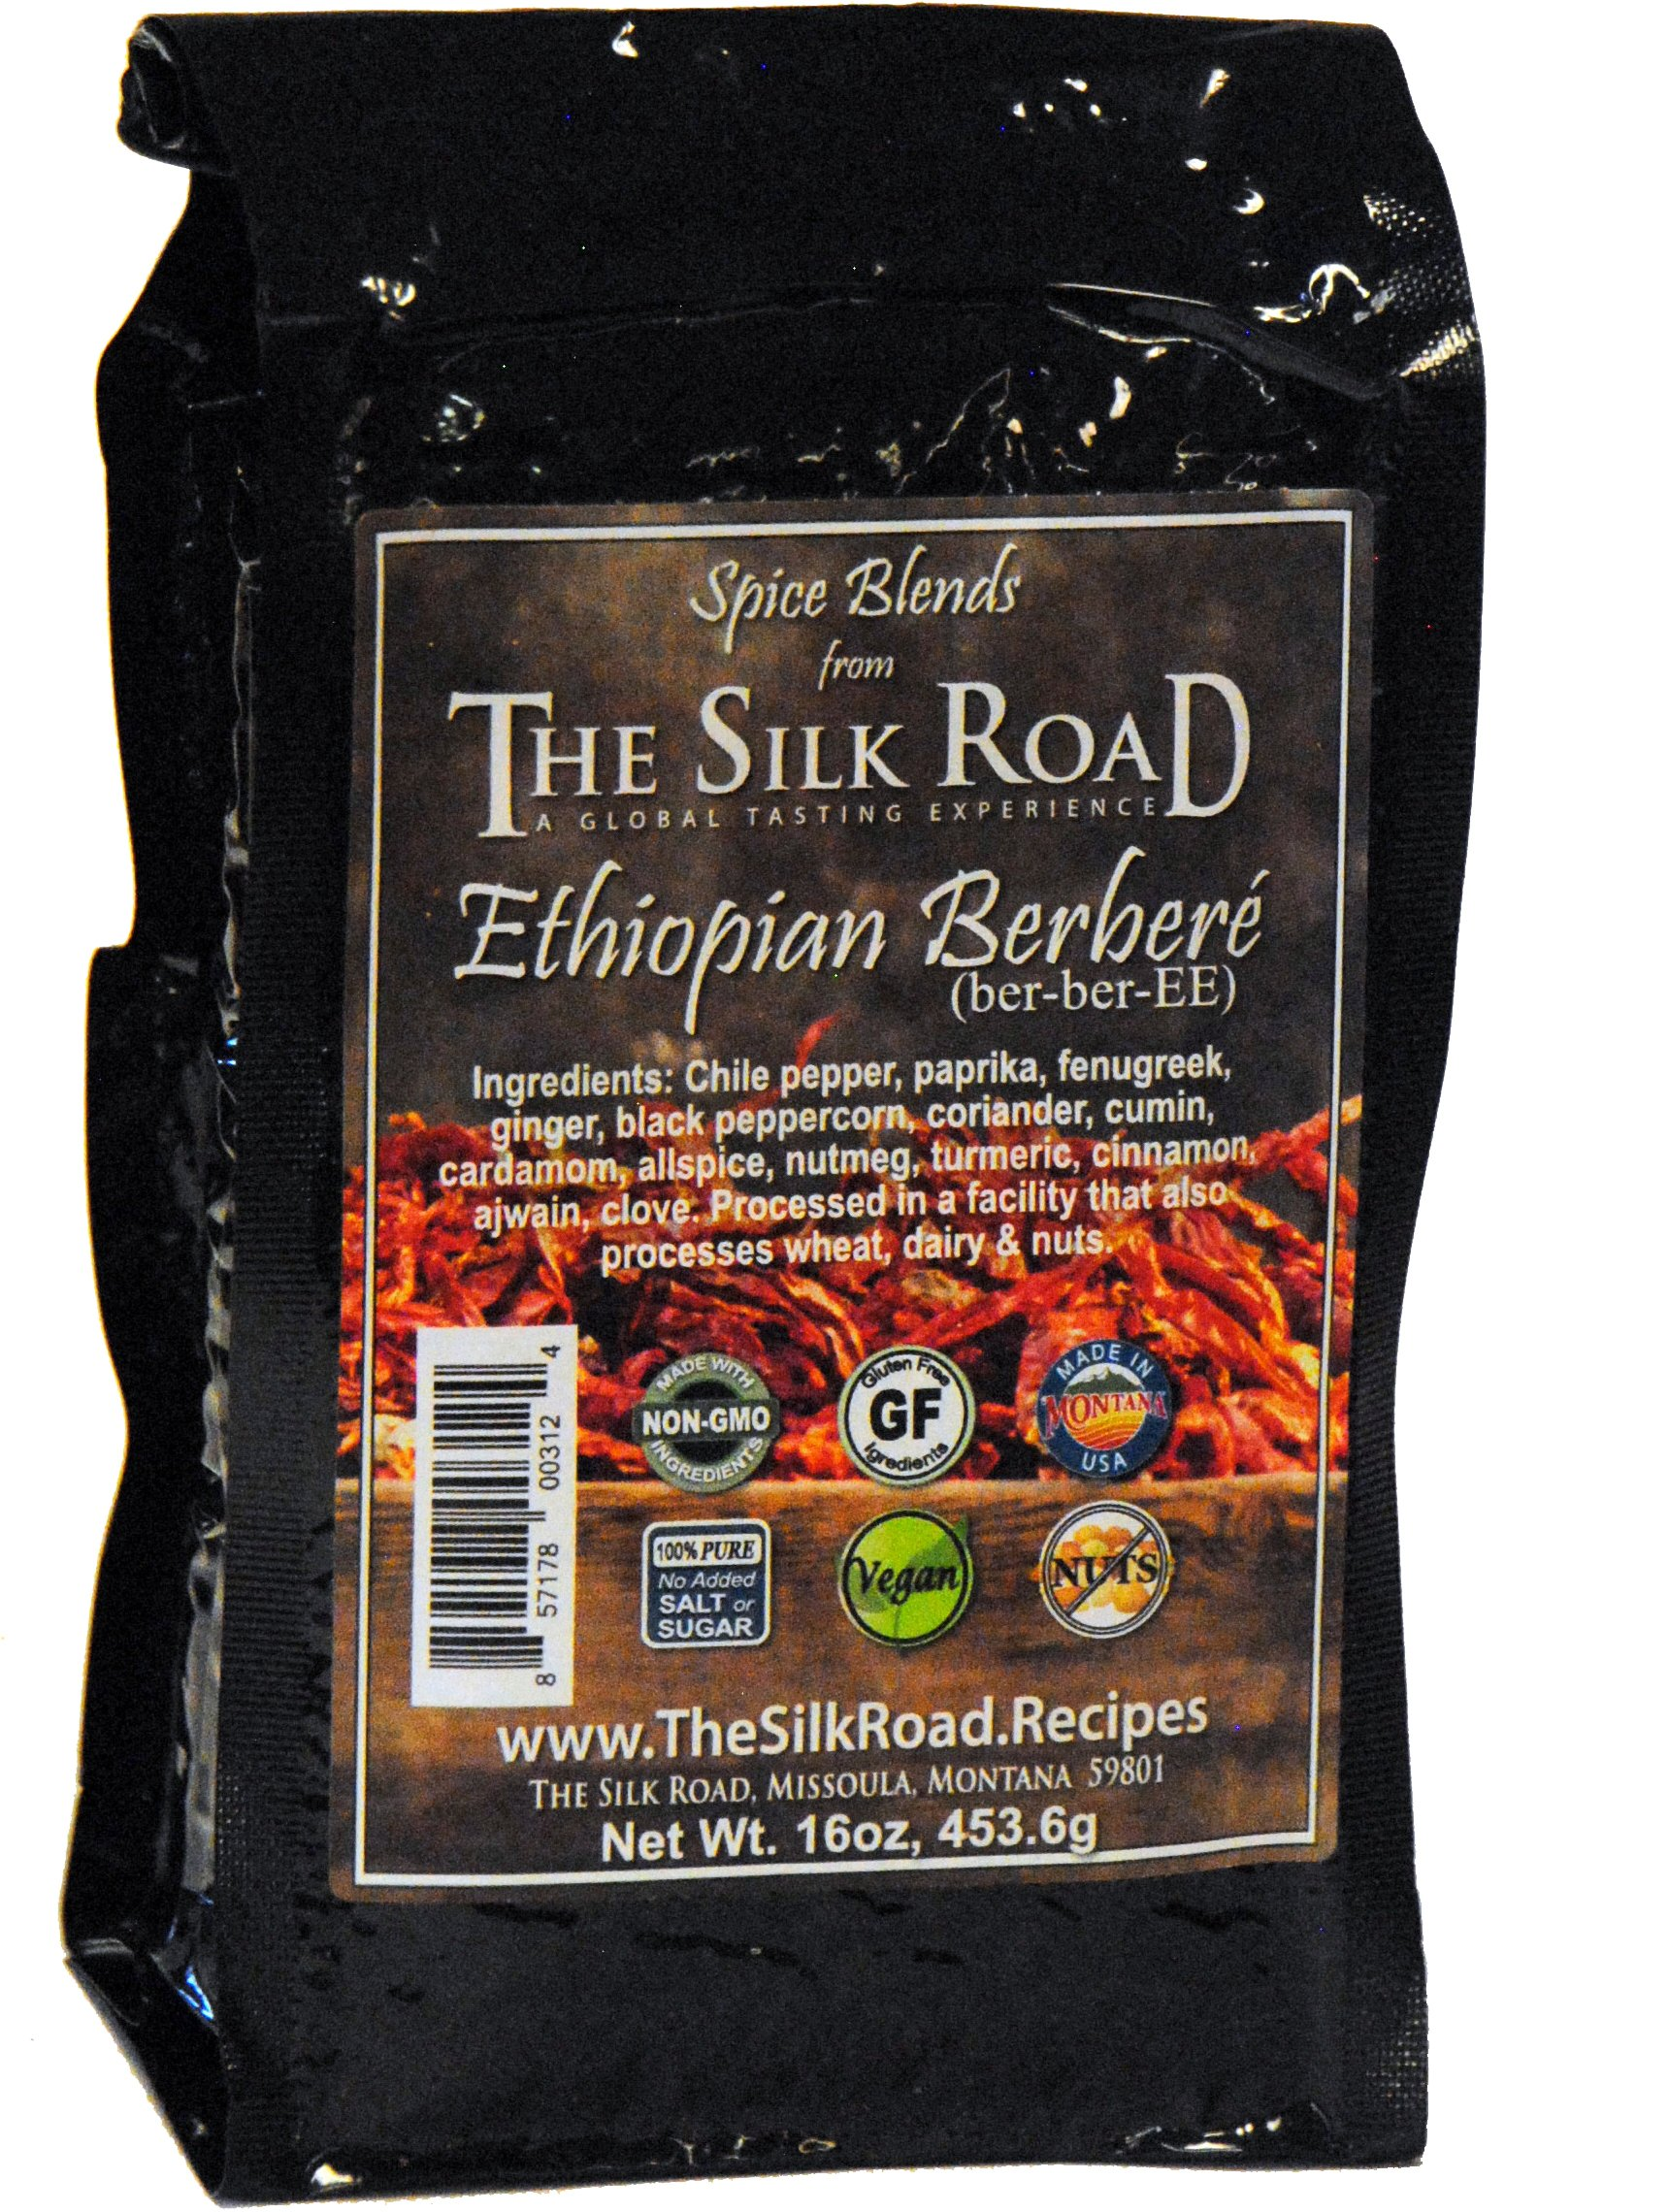 Ethiopian Berbere Spice Blend from The Silk Road Restaurant Bulk 1lb (16oz), No Salt   All Natural East African Seasoning   Vegan   Gluten Free Ingredients   NON-GMO   No Preservatives by The Silk Road A Global Tasting Experience